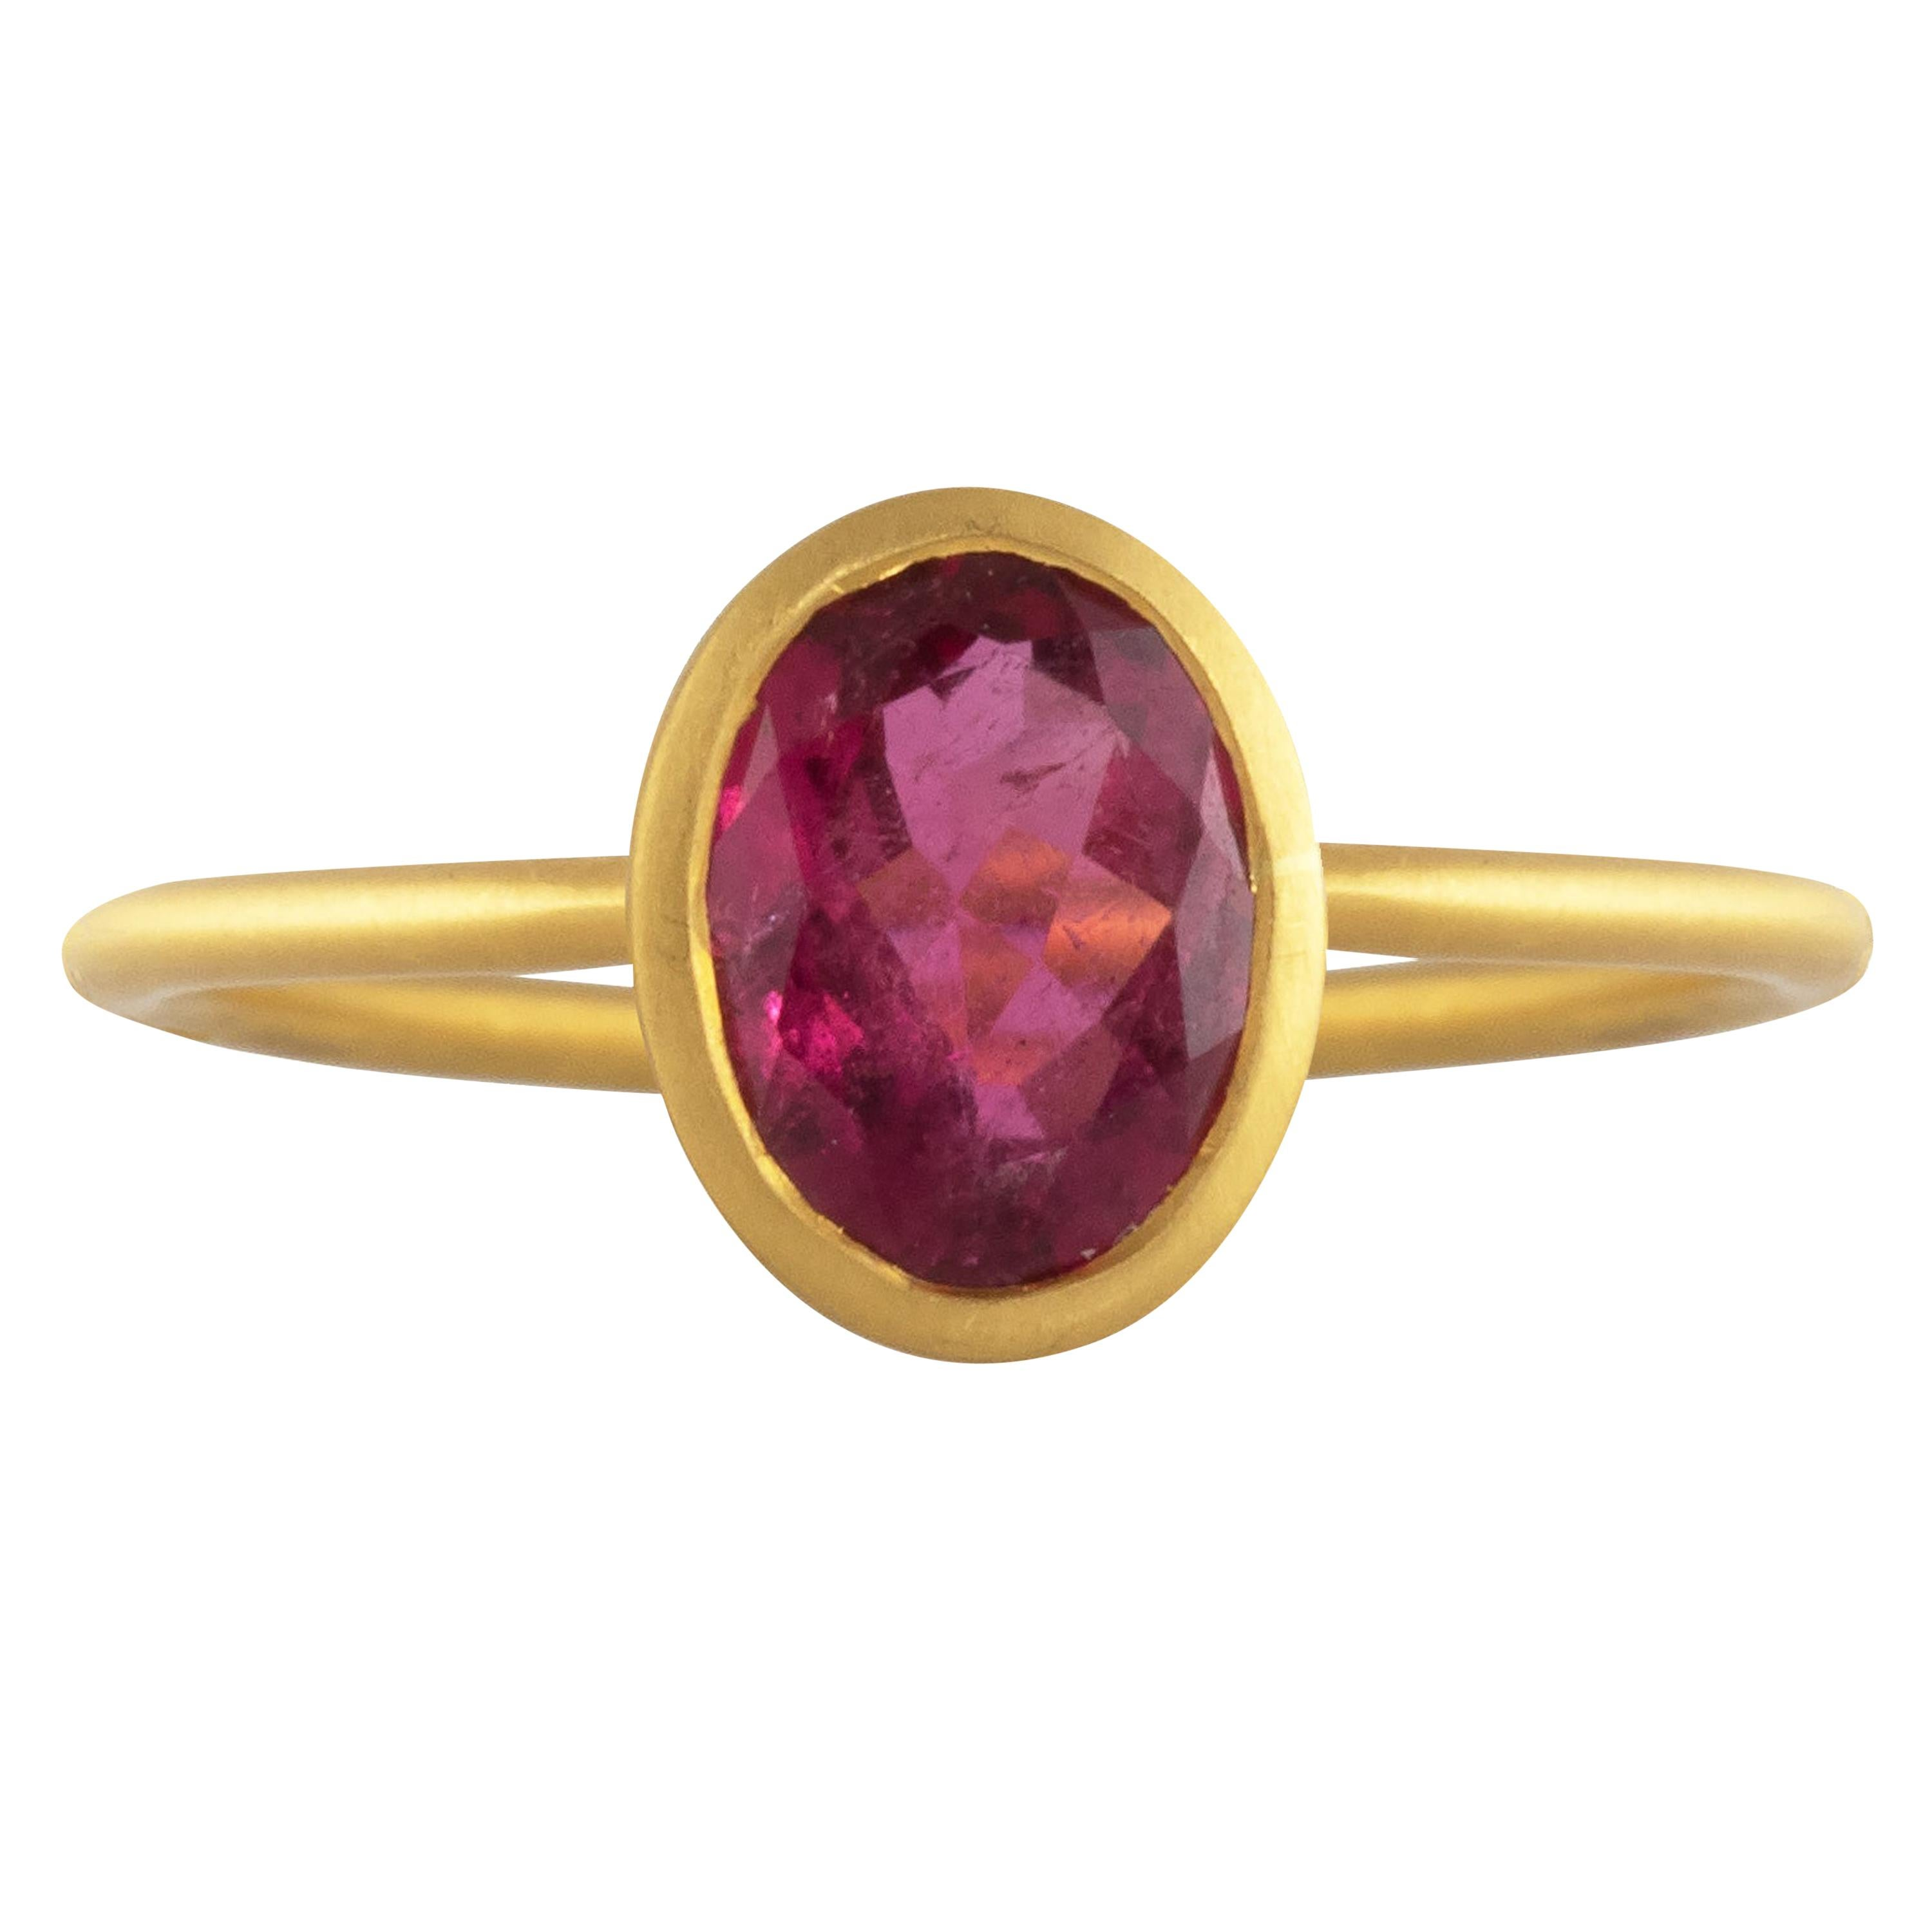 Ico & the Bird Fine Jewelry Red Spinel 22 Karat Gold Ring